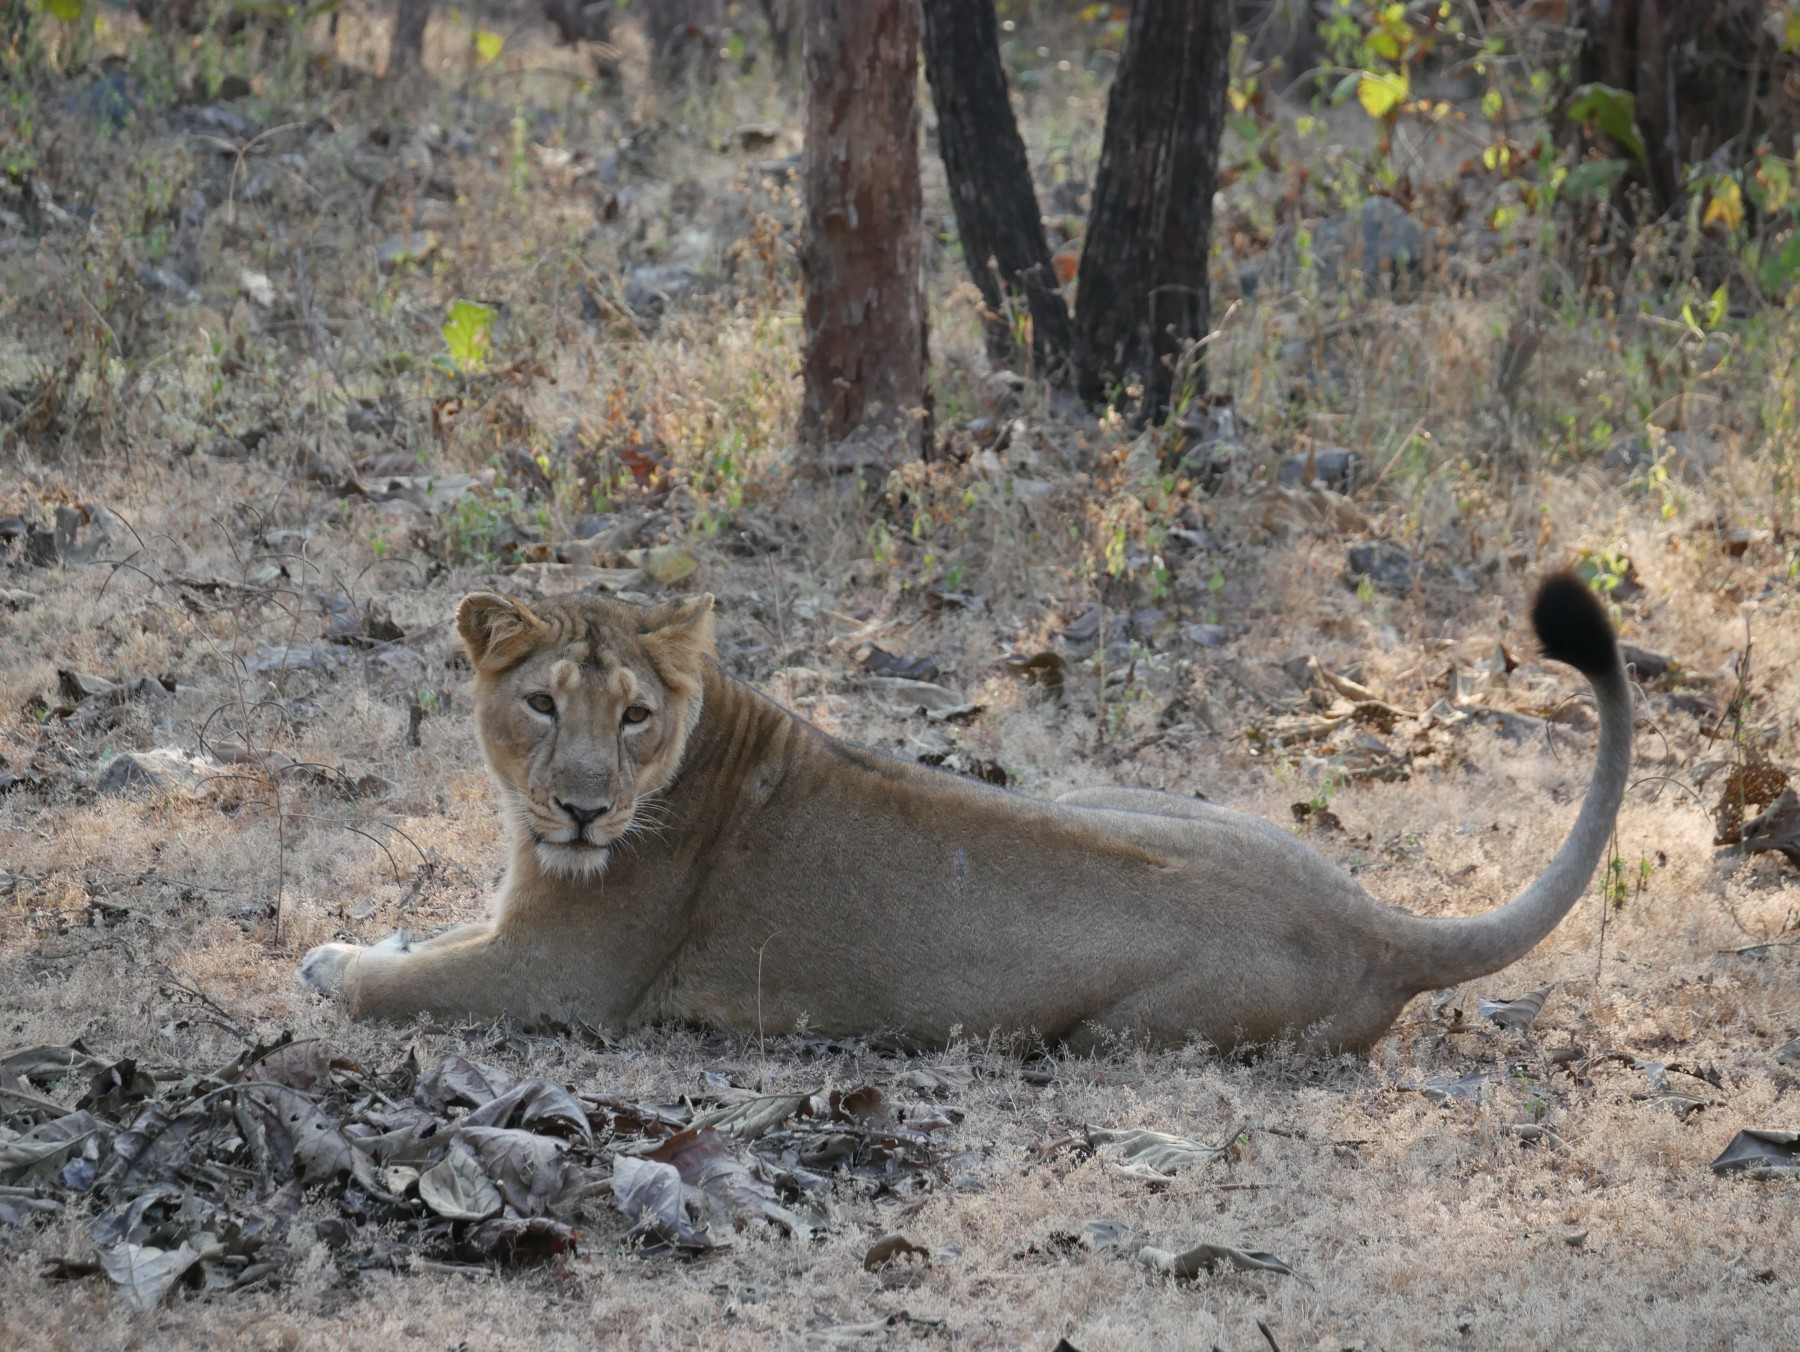 Gir Lioness by Suuny Shah